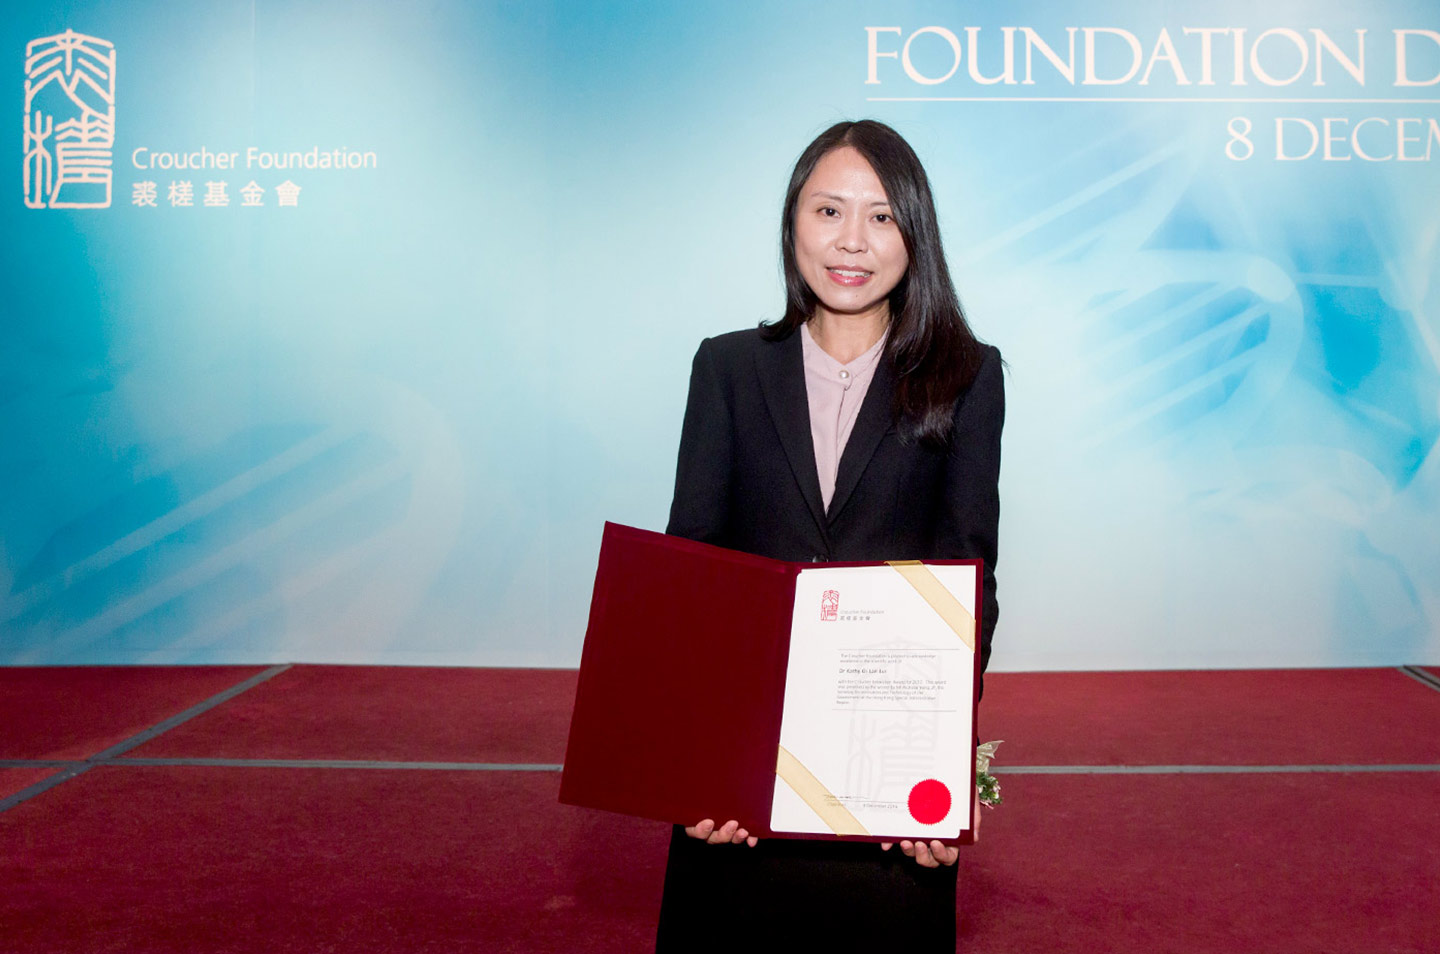 Professor Lui receives the Croucher Innovation Award 2017, for her distinguished accomplishment in the international scientific community